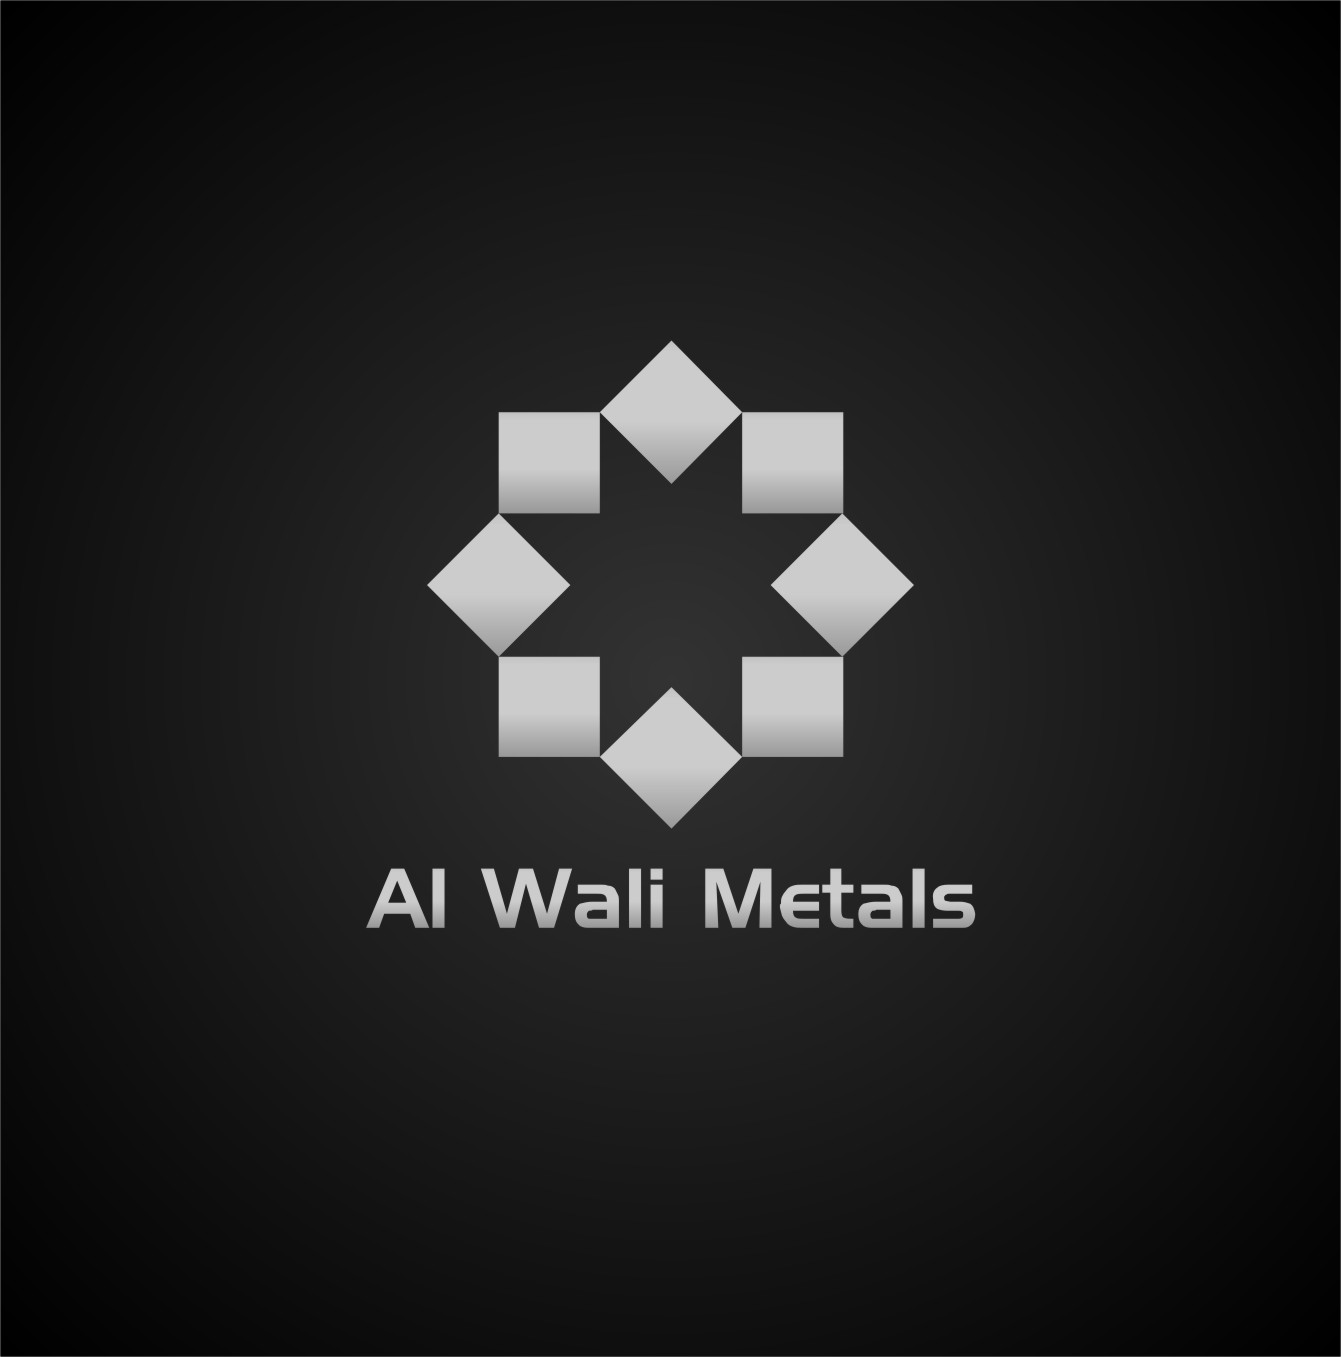 Logo Design by Ngepet_art - Entry No. 164 in the Logo Design Contest Inspiring Logo Design for Al Wali Metals.